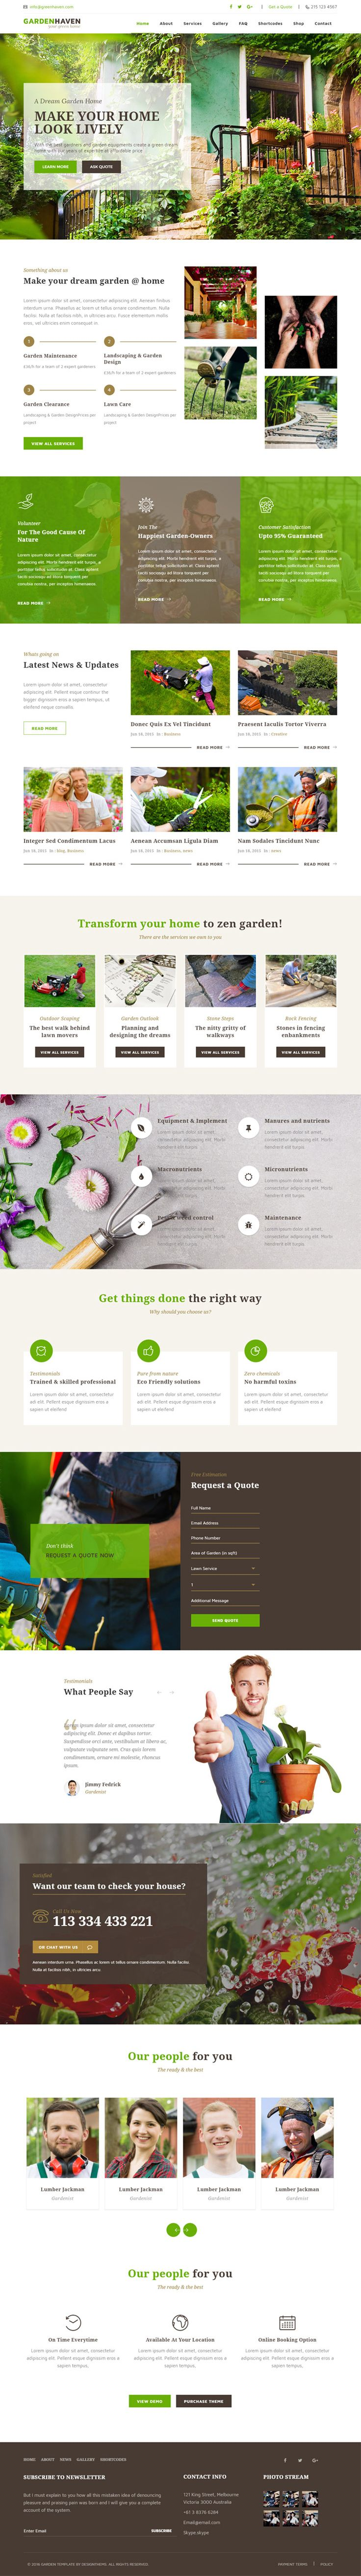 Gardenhaven WordPress theme compiled with fetching design and features well suits for creating attractive gardening websites.